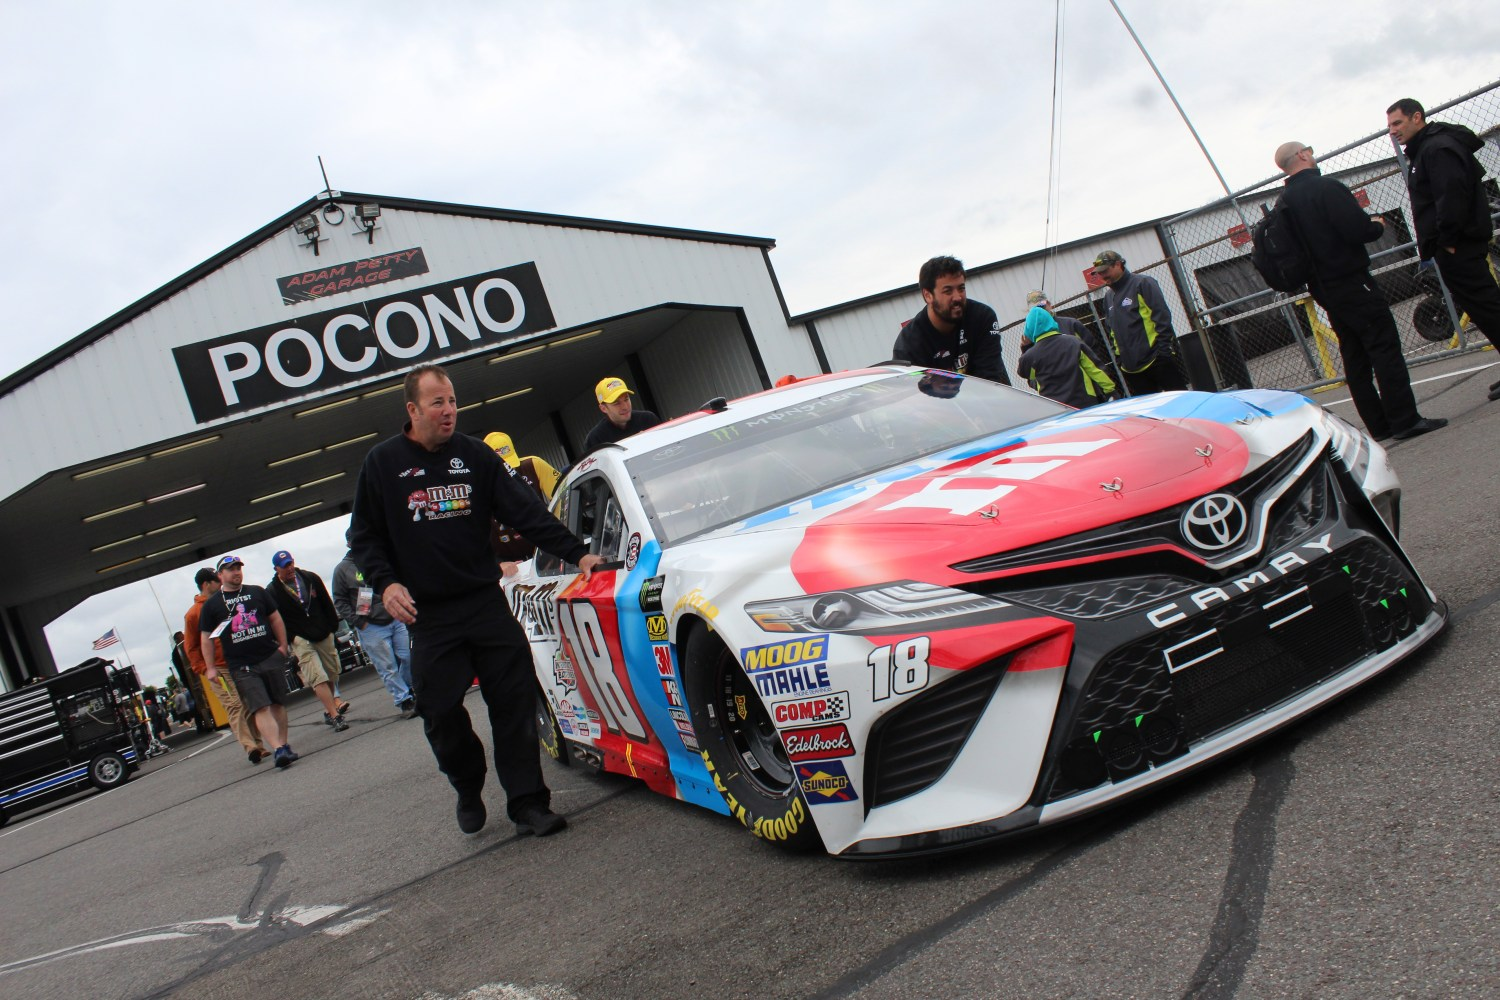 The No. 18 Toyota is rolled out of the garage ahead of the 2018 Pocono 400. (Tyler Head | The Racing Experts)